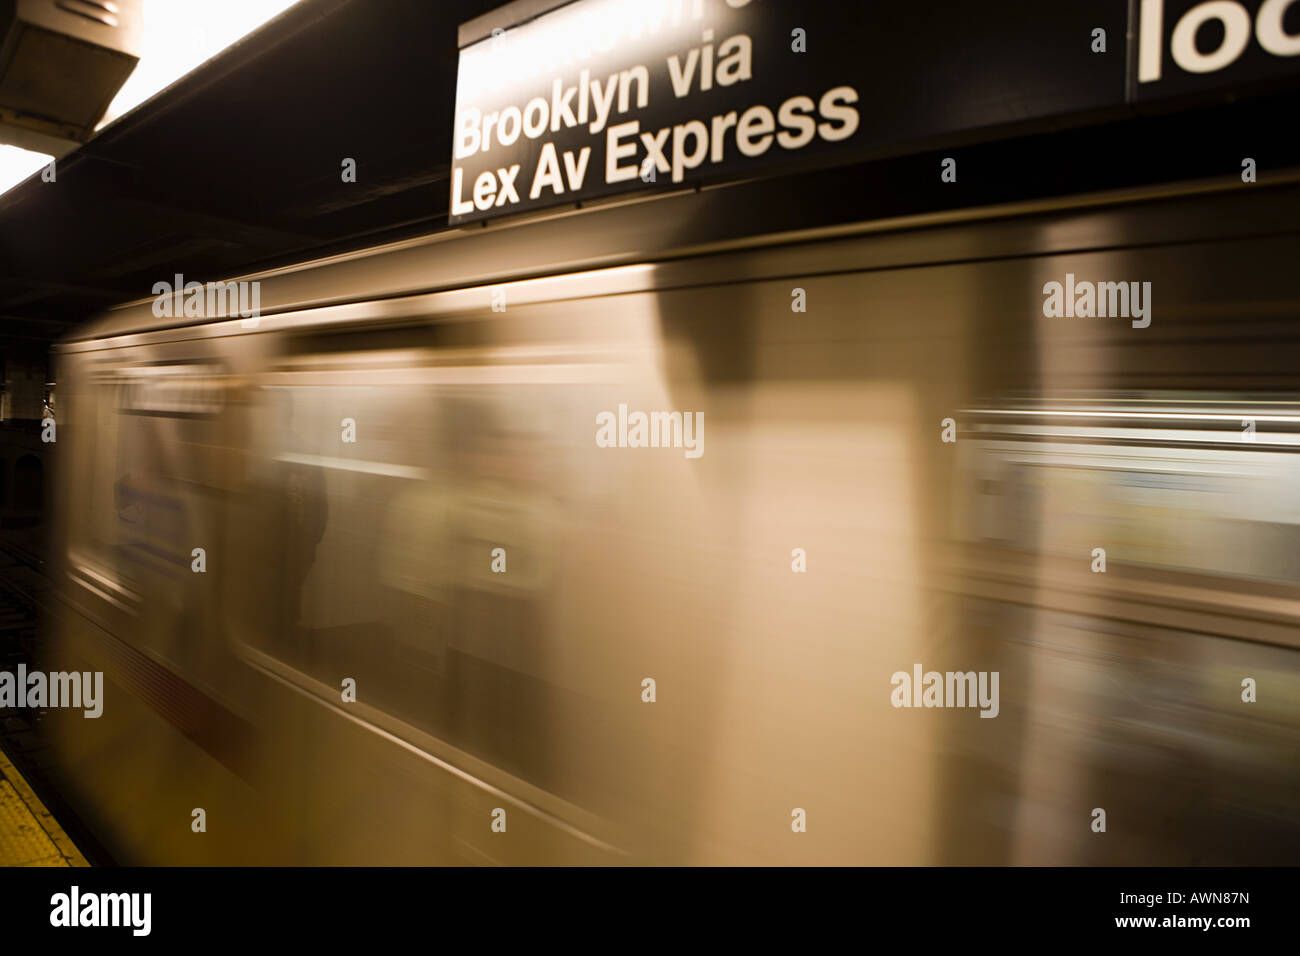 Subway train in motion - Stock Image